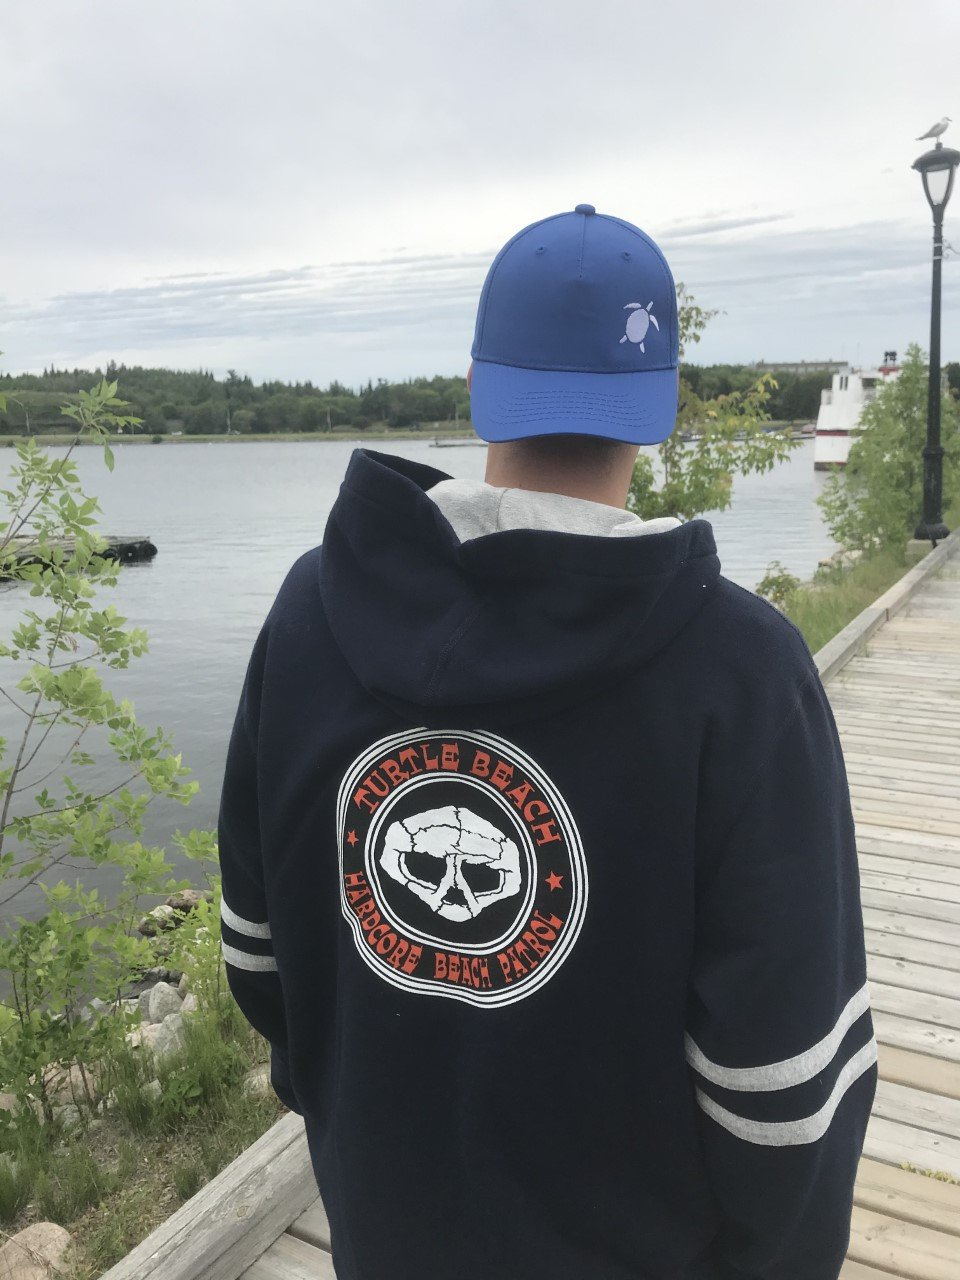 Turtle Beach Clothing hardcore hoodie, Cam Scott looking great rocking the navy sweater on Kenora's harbourfront. Canadian Made, 80% organic cotton.